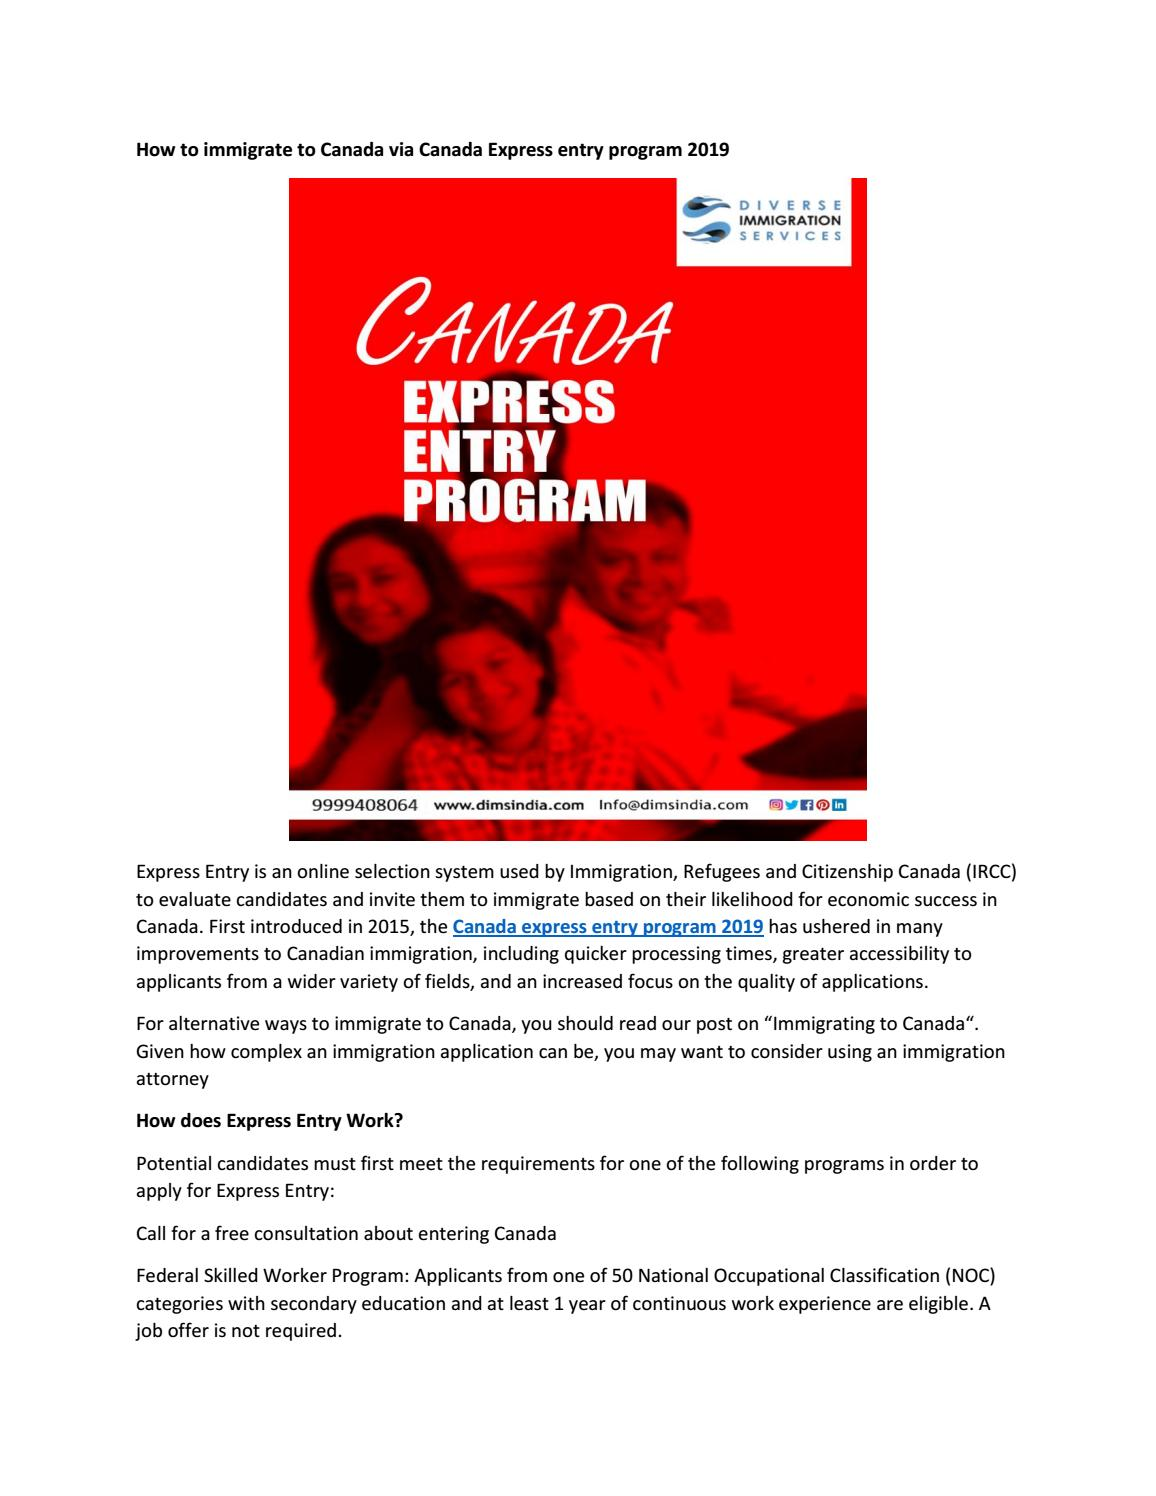 How to immigrate to Canada via Canada Express entry program 2019 by